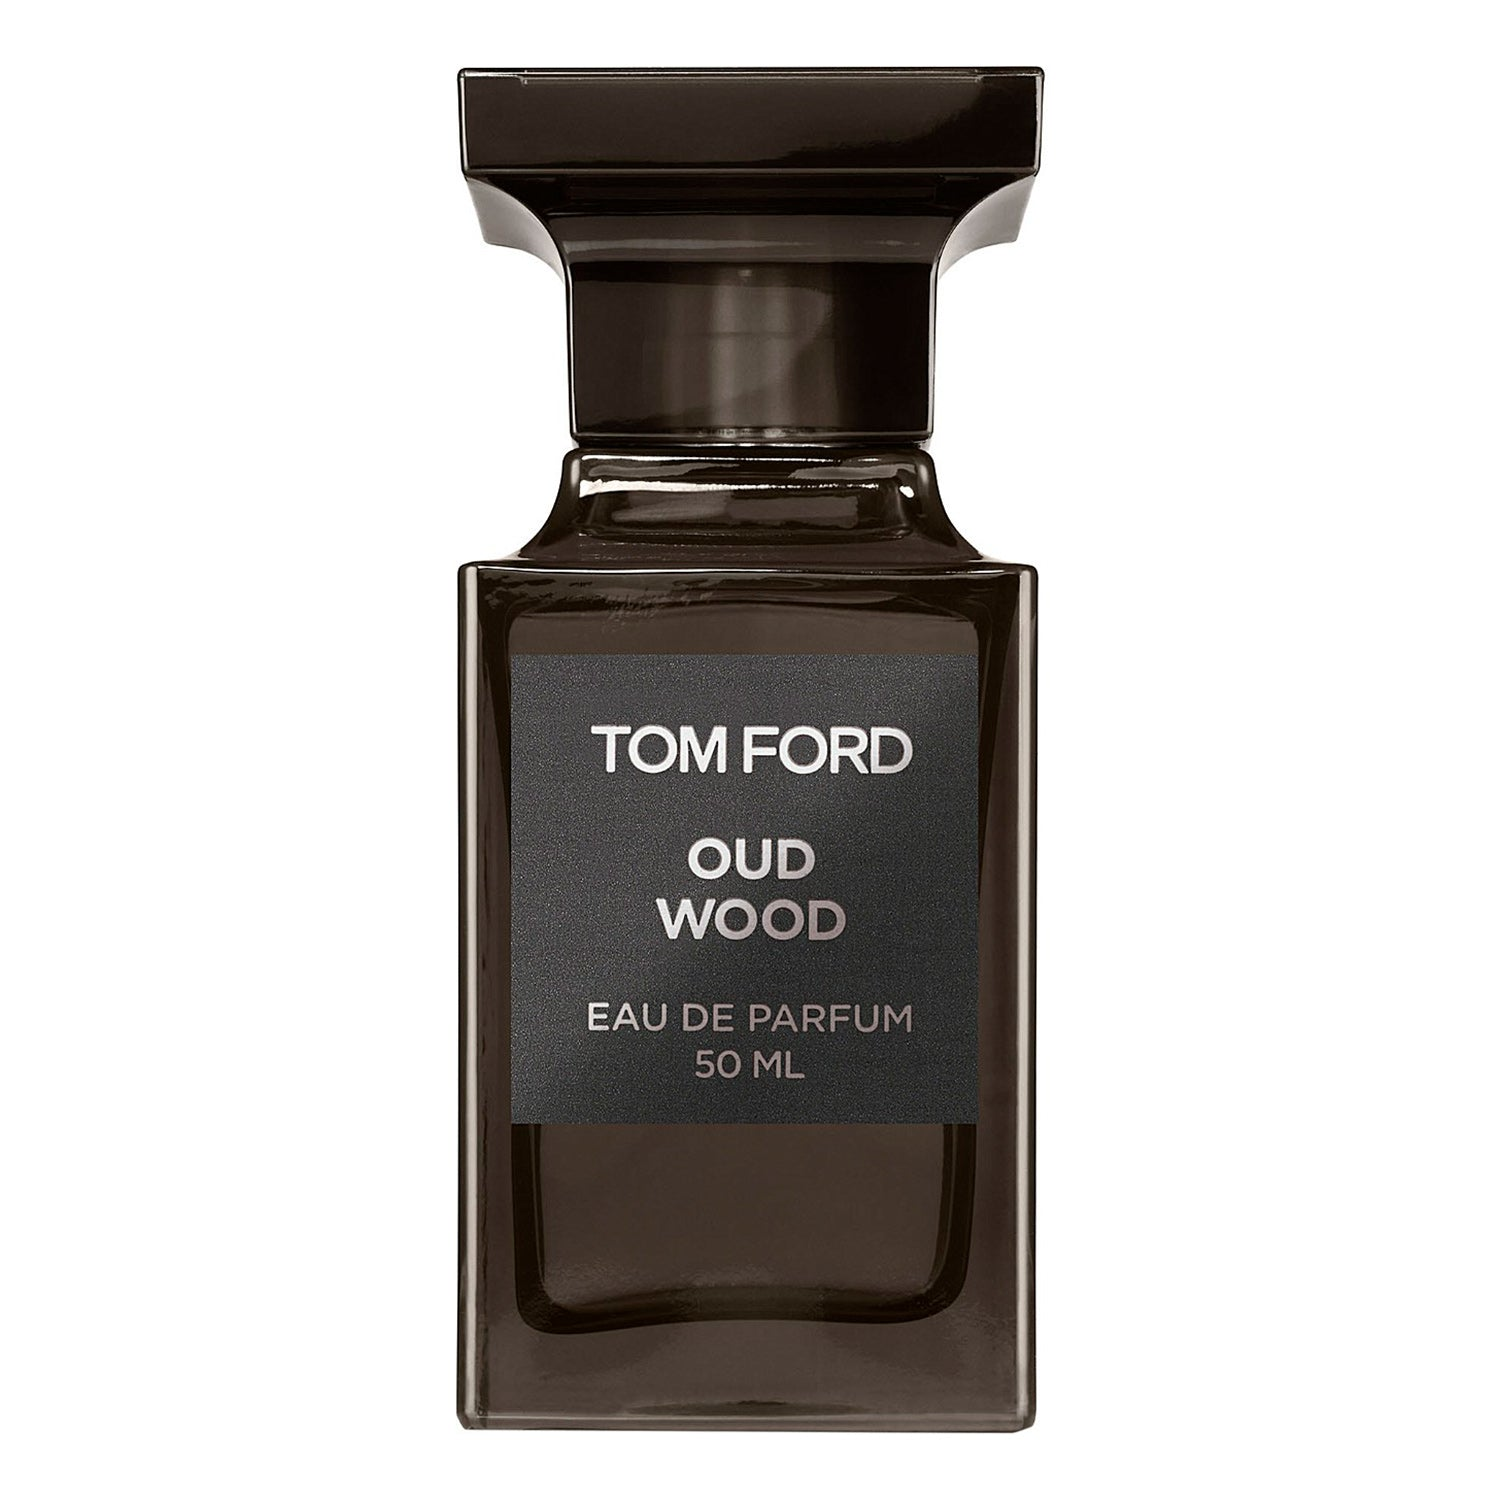 Tom Ford Oud Wood Eau De Parfume, 50 ml